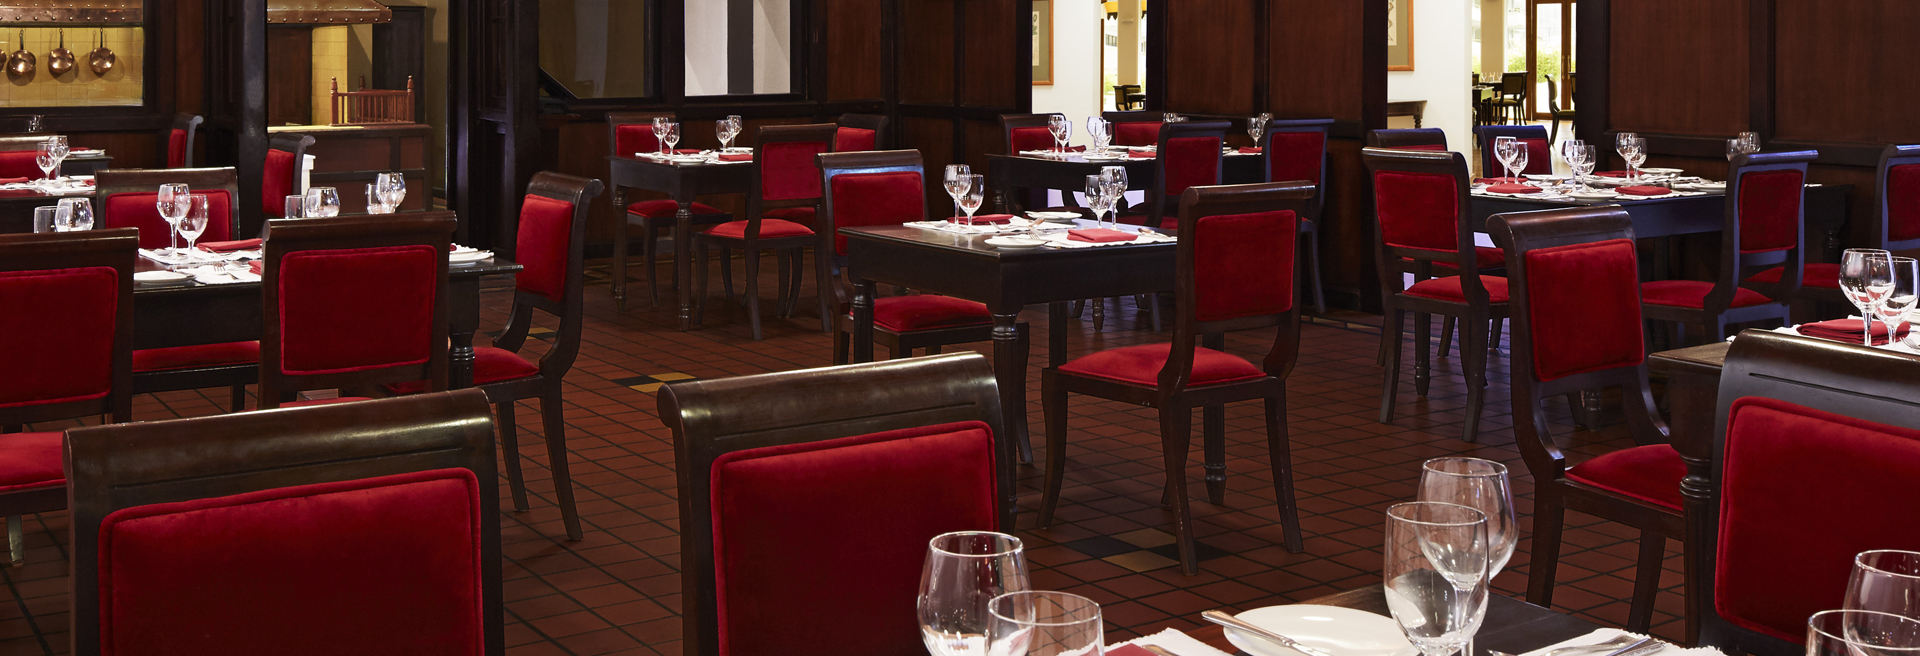 Fine dining restaurant with a colonial theme